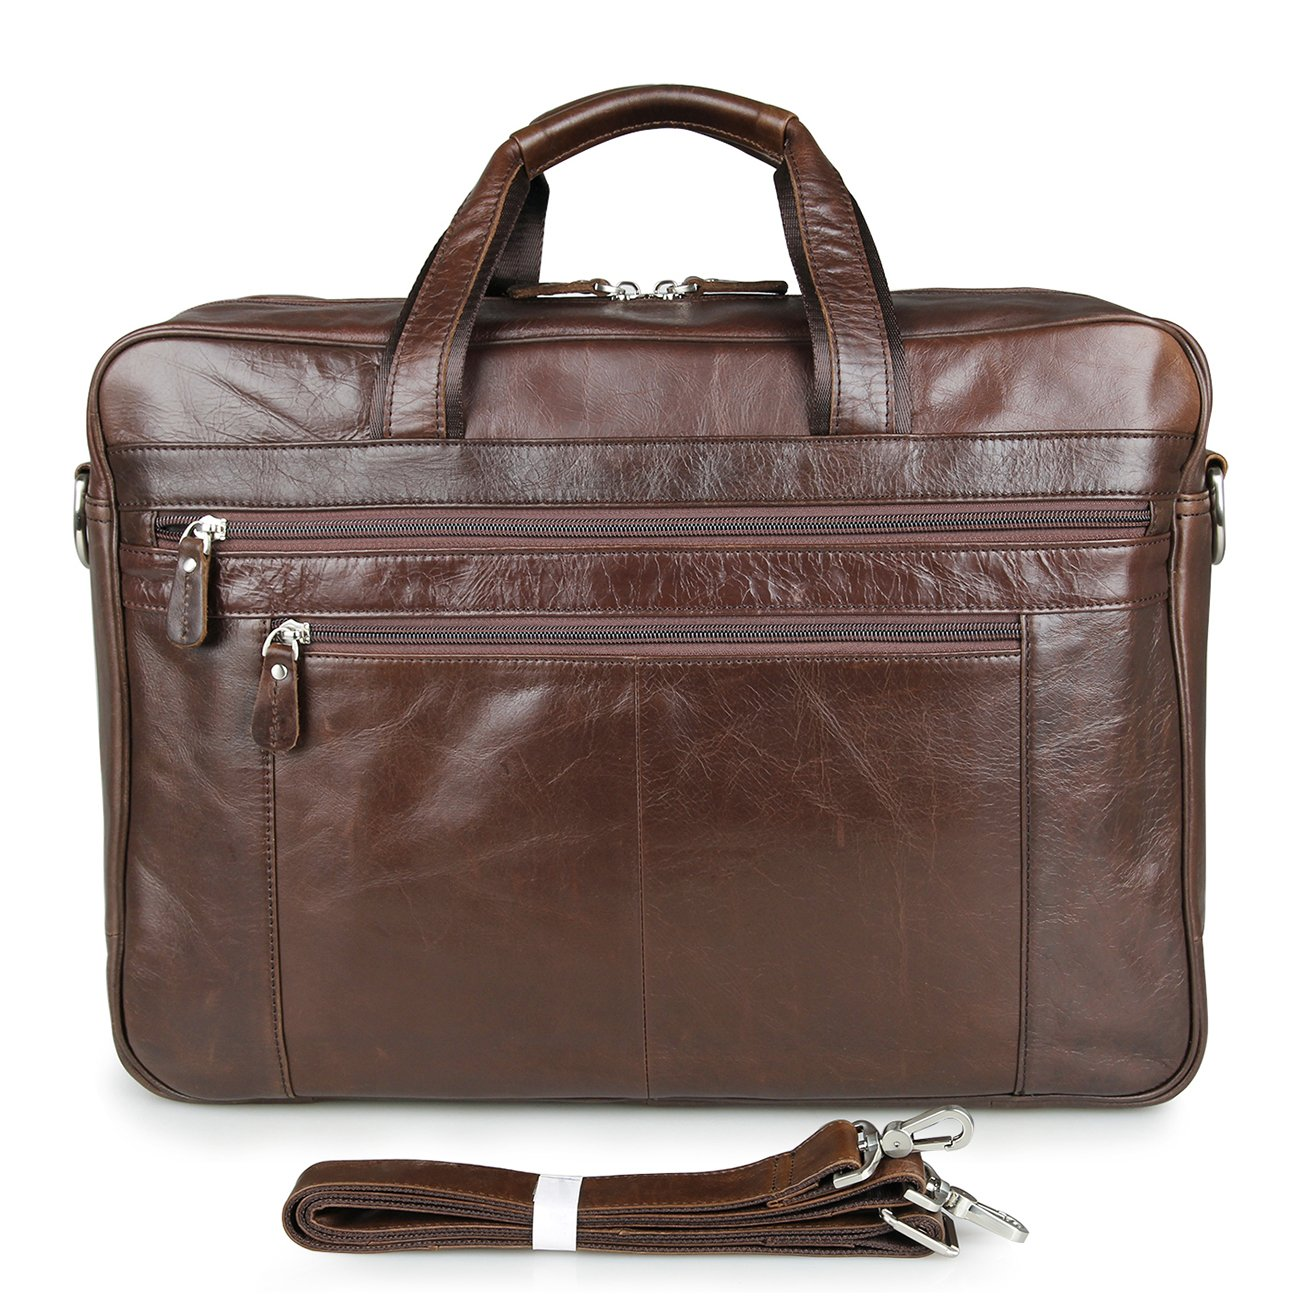 Polare Real Soft Nappa Leather 17 Laptop Case Professional Briefcase Business Bag For Men (coffee)